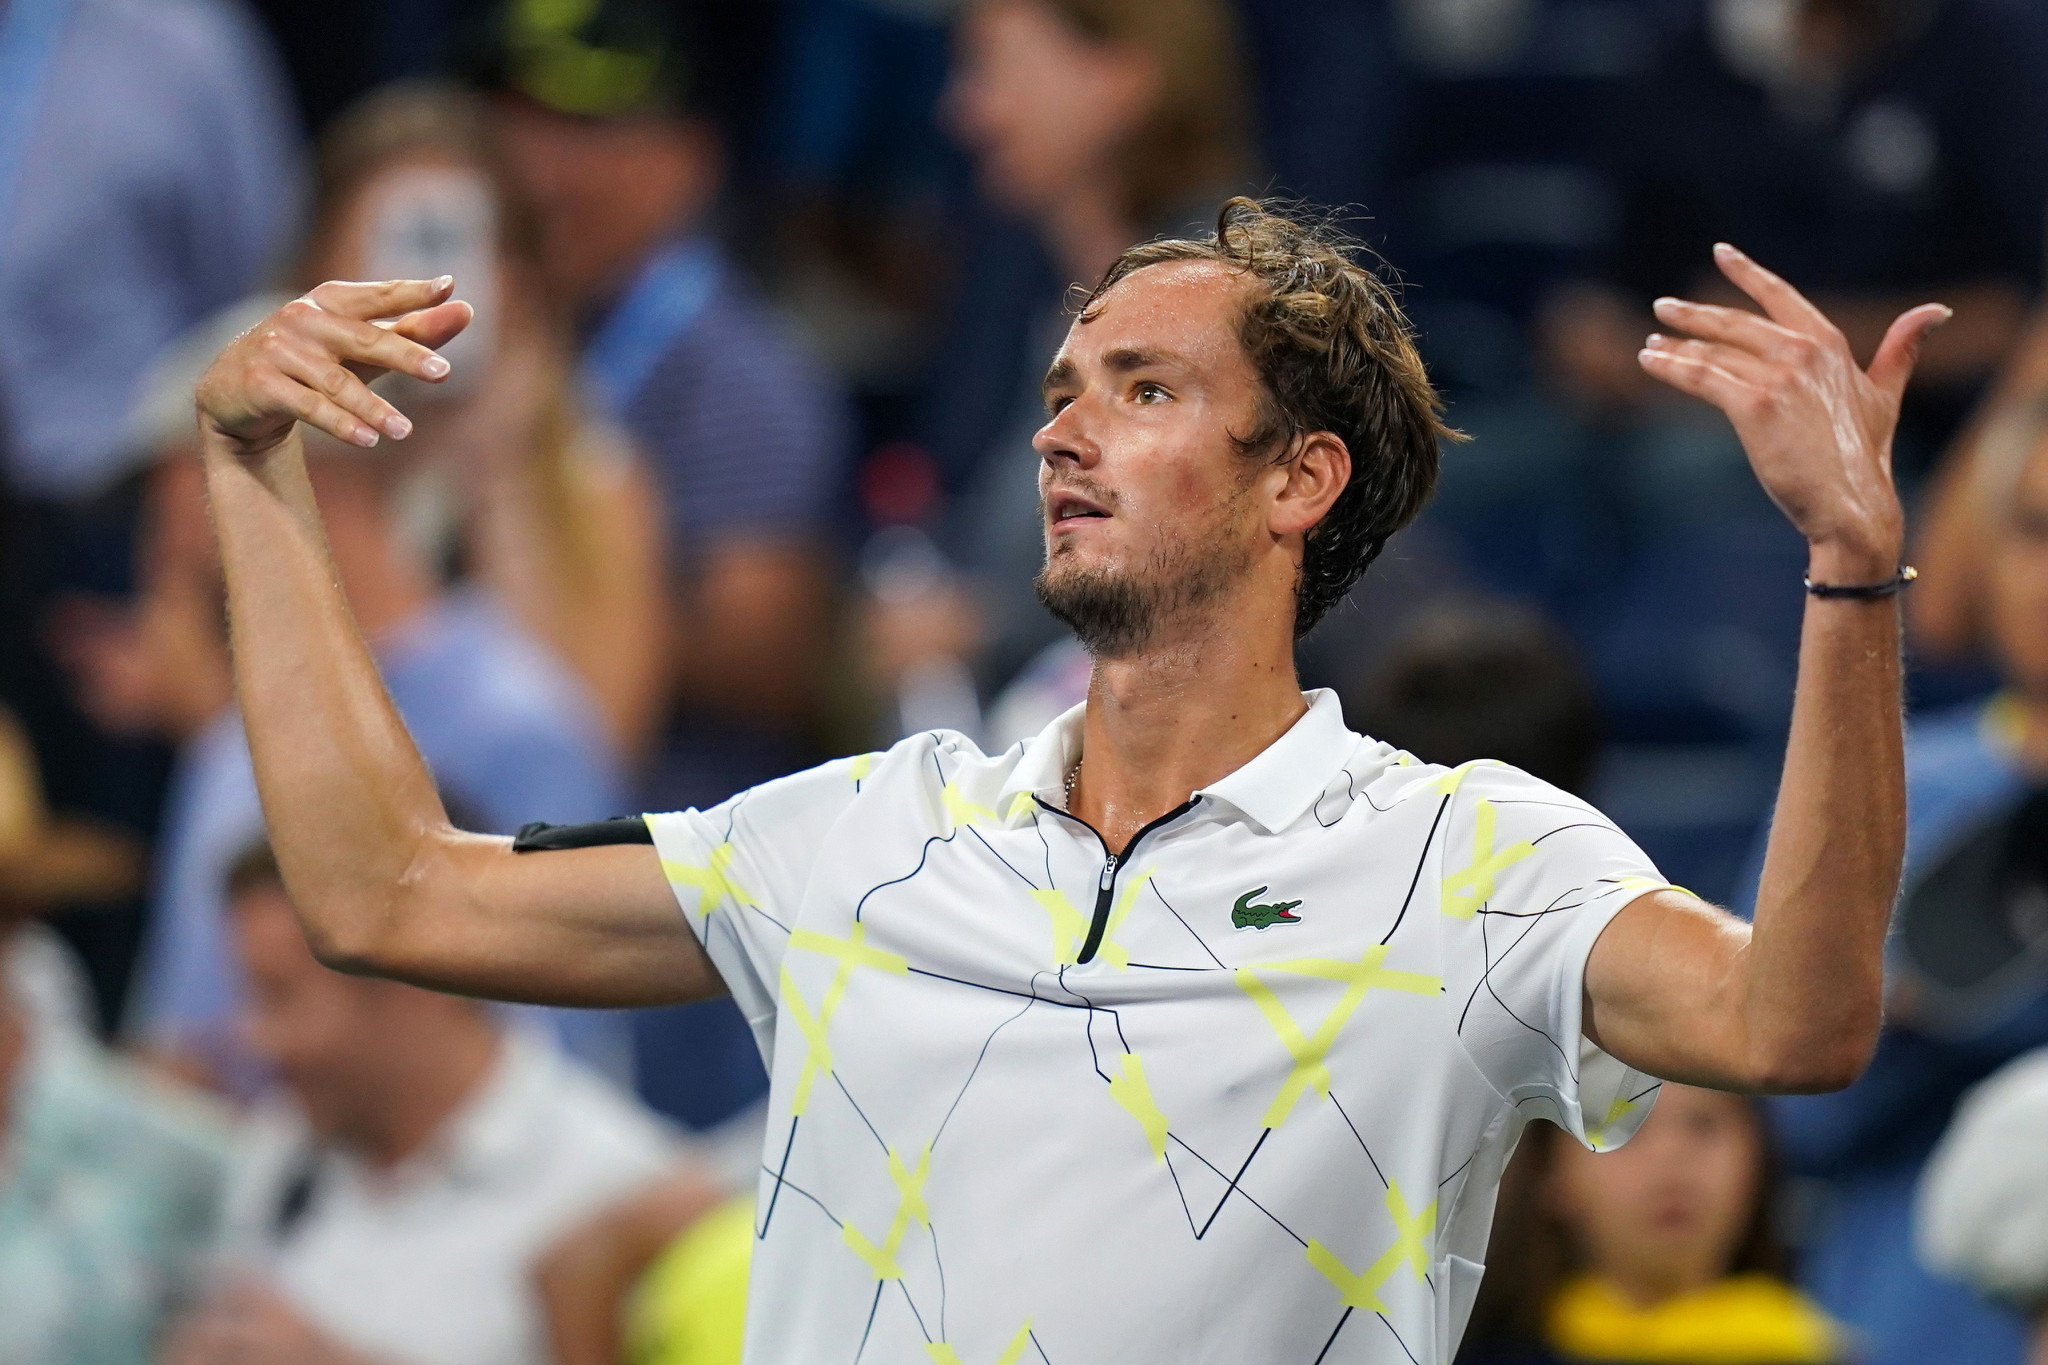 Daniil Medvedev played up to the jeering crowd again at Flushing Meadows ©Getty Images